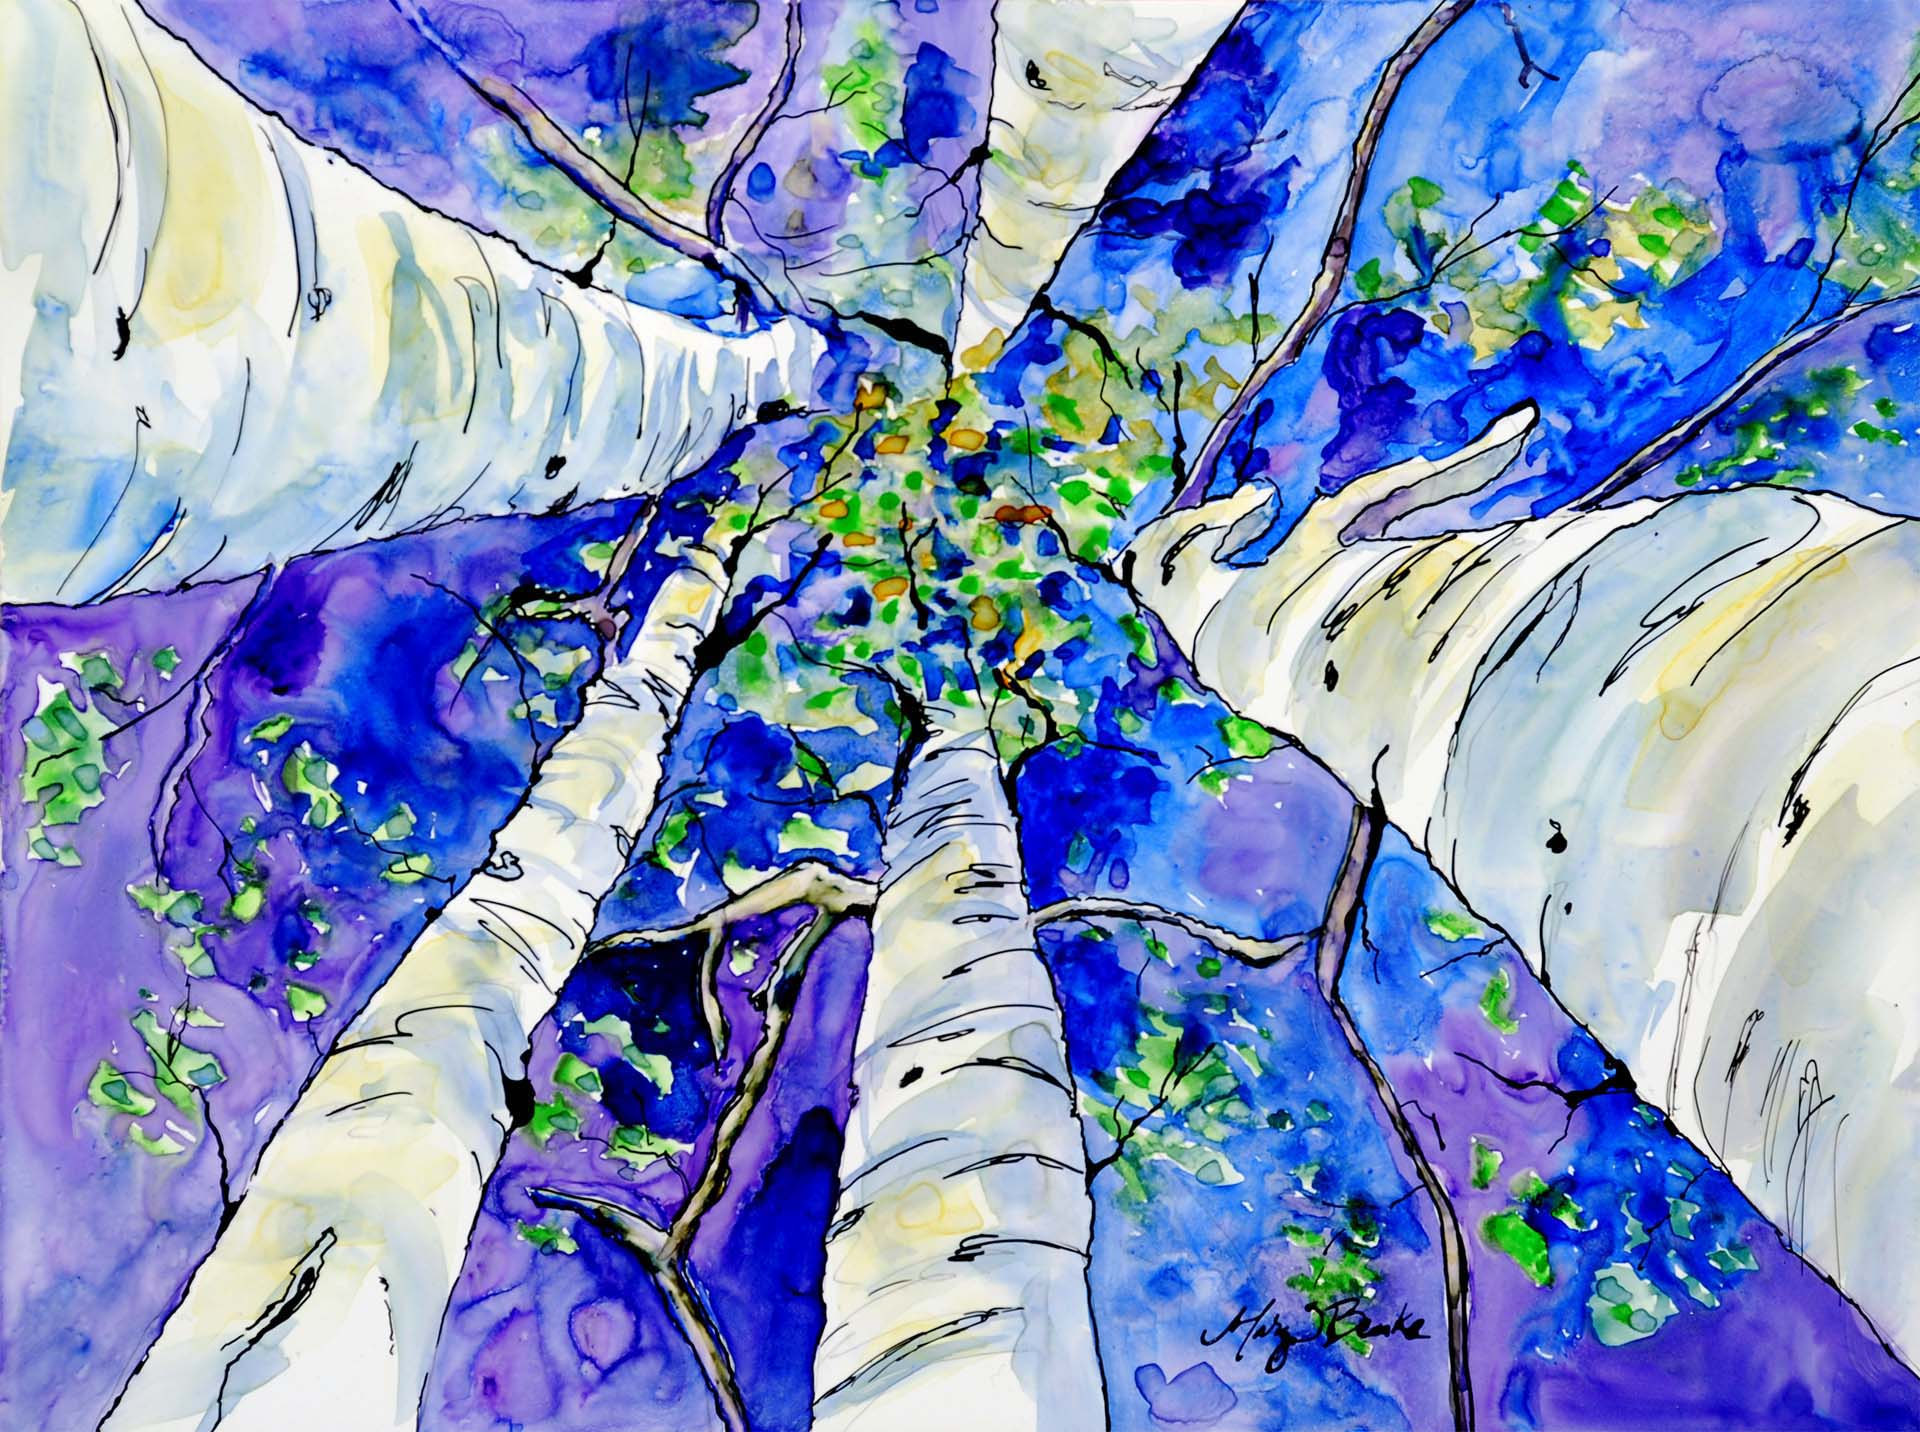 """A """"skyward"""" view looking up through aspen trees to a blue/violet sky painted in watercolor and ink on Yupo paper by Mary Benke"""